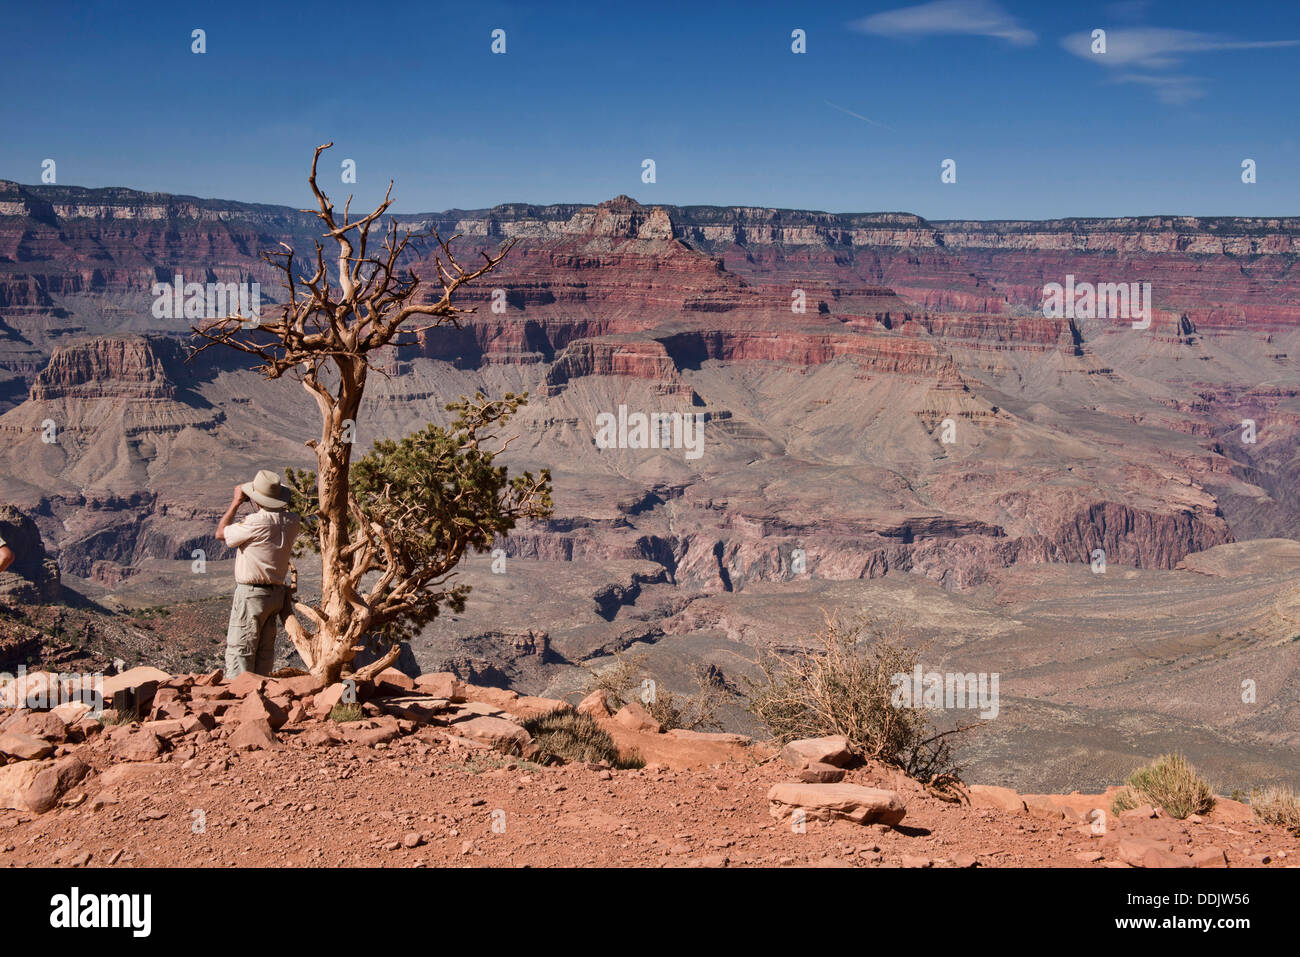 The view from Cedar Ridge on the Kaibab Trail, Grand Canyon National Park, Arizona - Stock Image